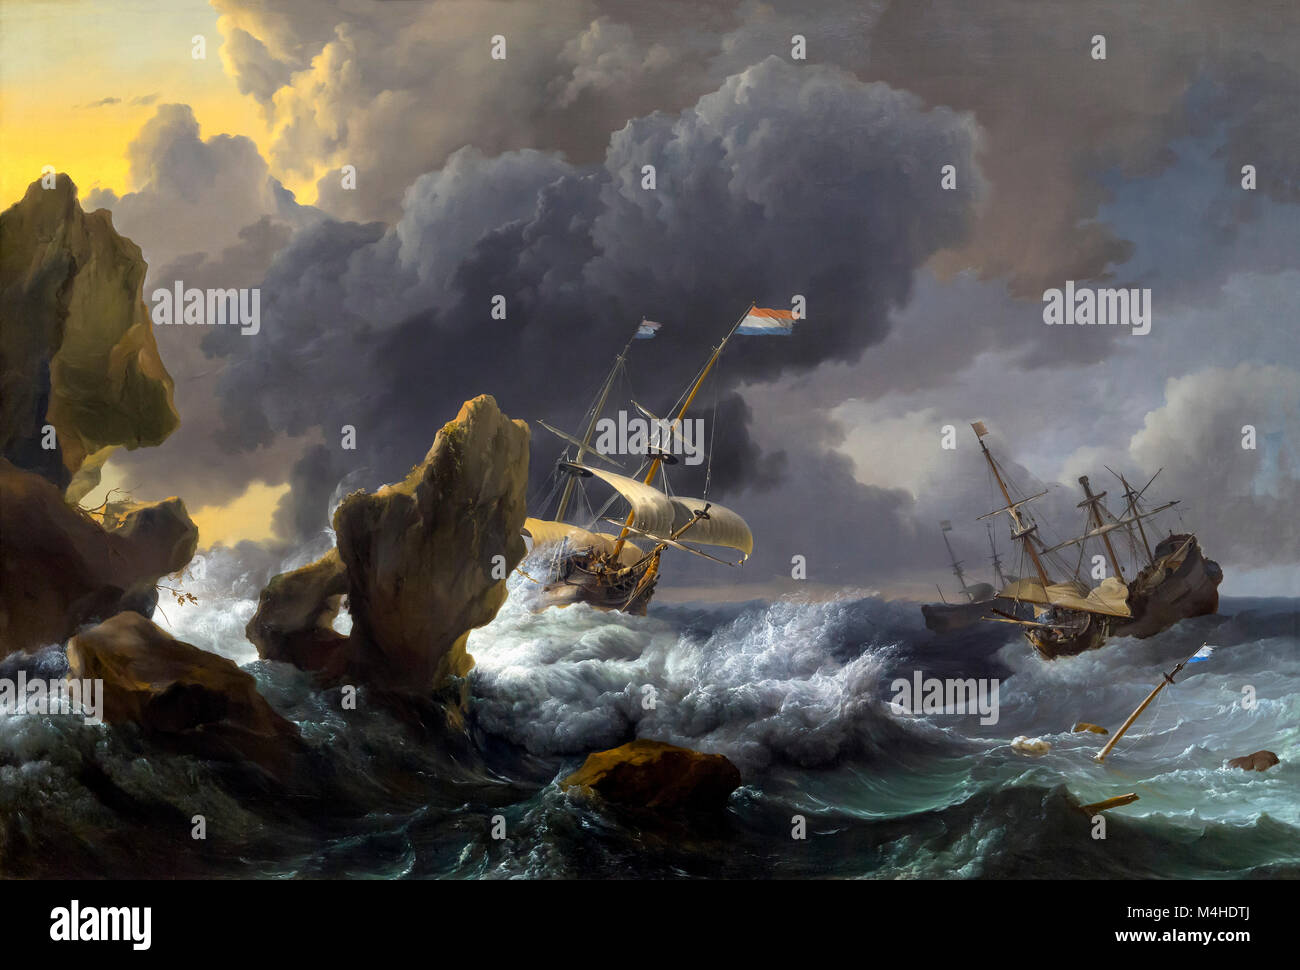 Le navi in pericolo off una costa rocciosa, Ludolf Bakhuizen, 1667, National Gallery of Art di Washington DC, USA, Immagini Stock